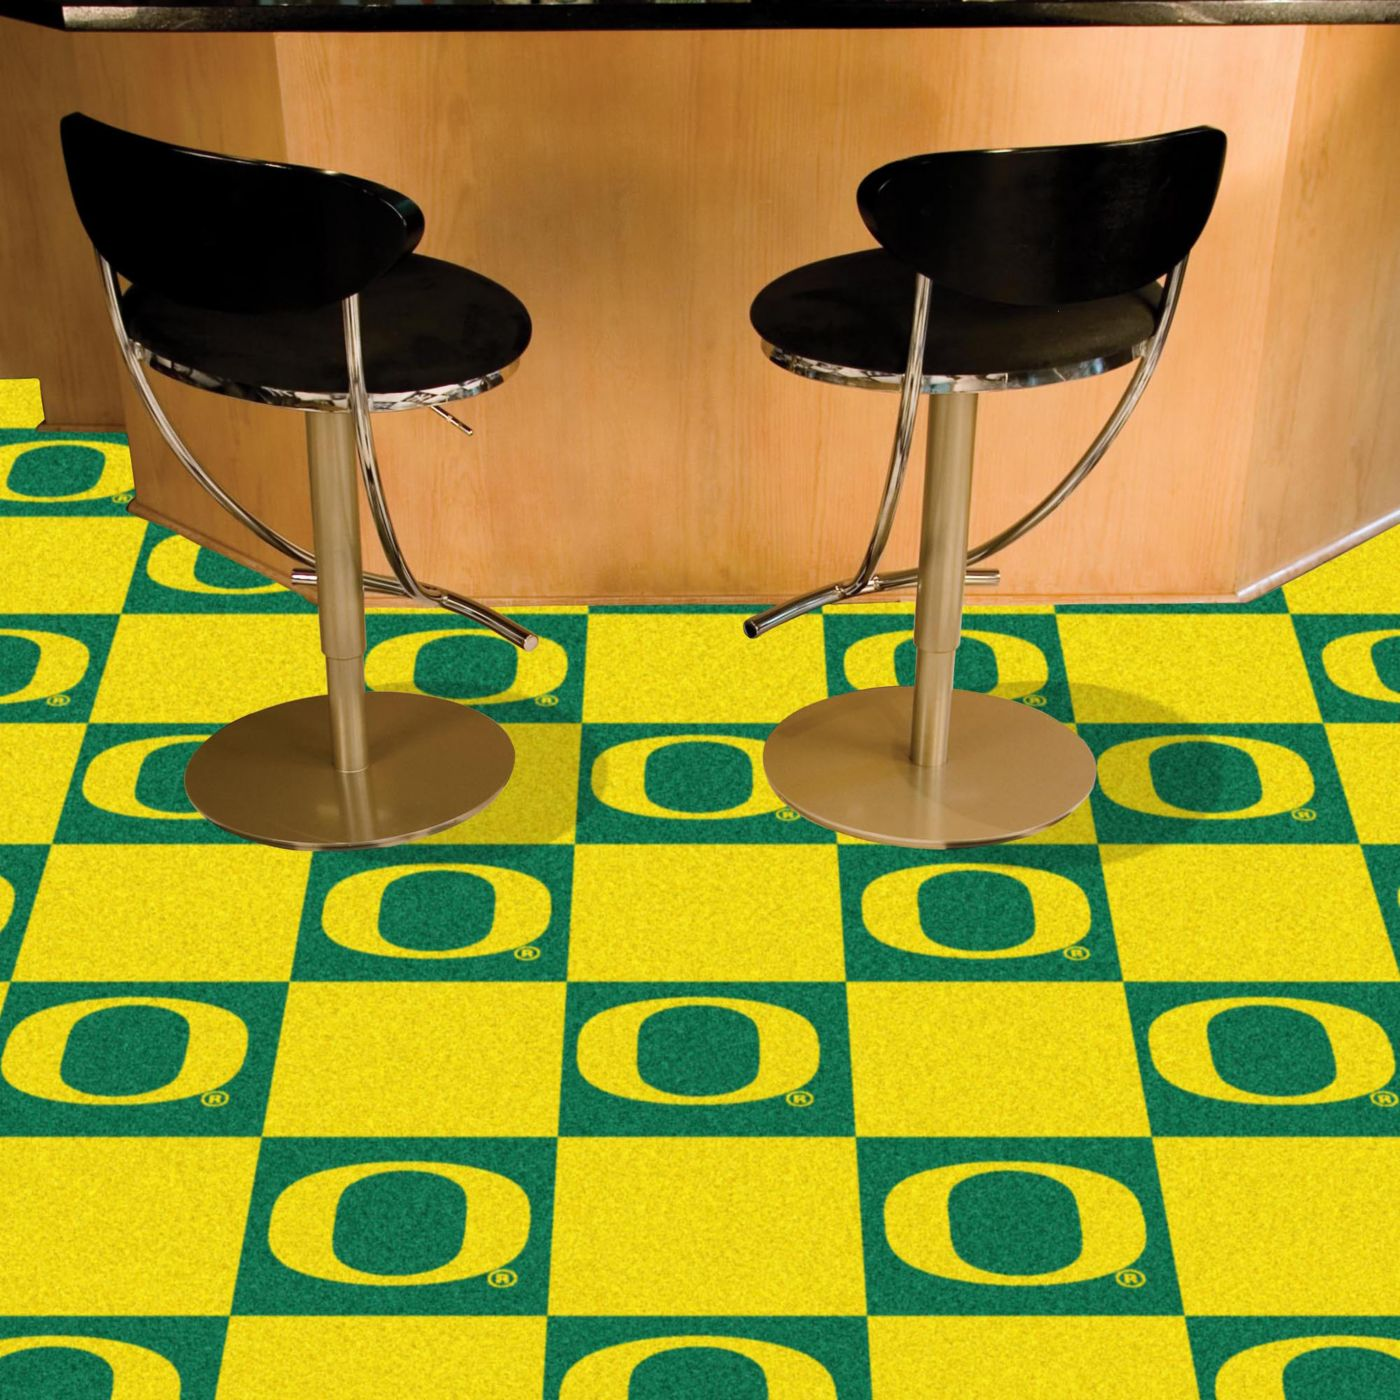 FANMATS Oregon Ducks Team 20 Piece Carpet Tile Set